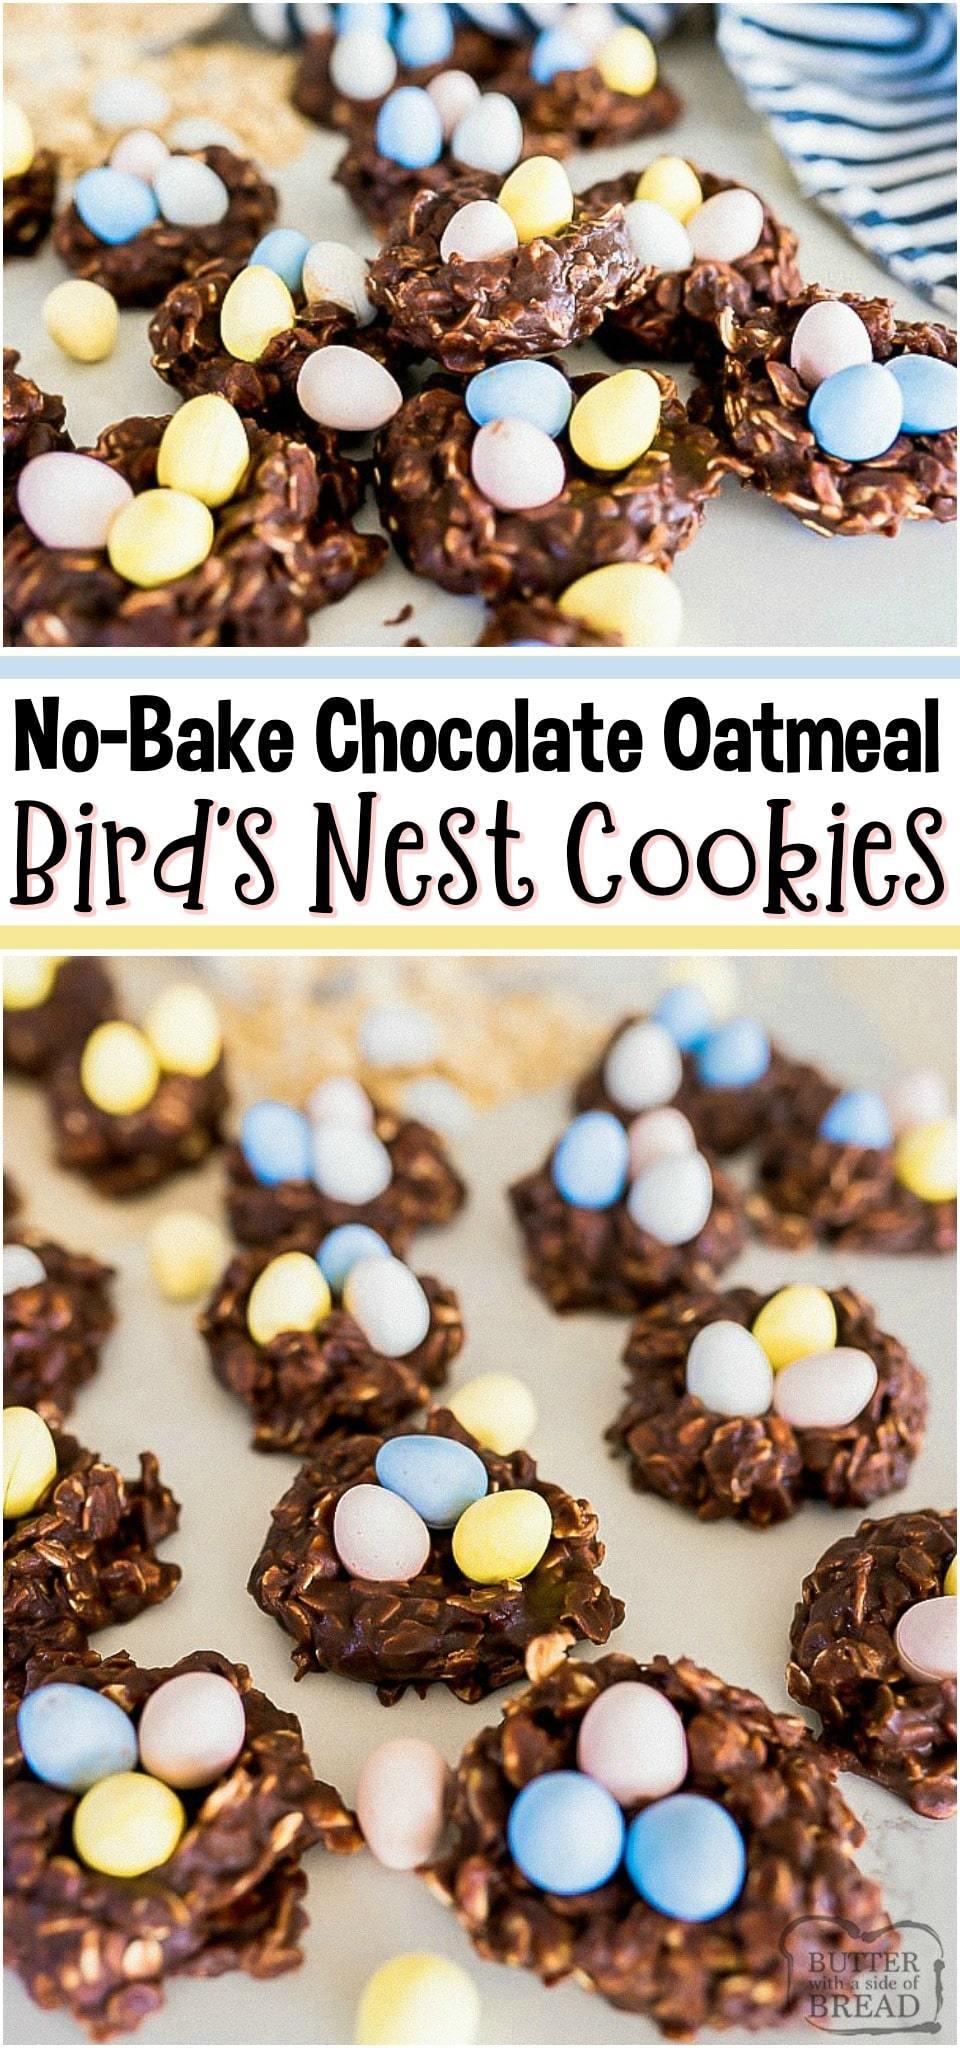 Easter Nest cookies are the perfect easy and festive dessert to make with your family! The soft chocolate no-bake oatmeal cookie is the perfect nest for your chocolate egg candies! #Easter #NoBake #cookies #BirdsNest #chocolate #Dessert #easyrecipe from BUTTER WITH A SIDE OF BREAD